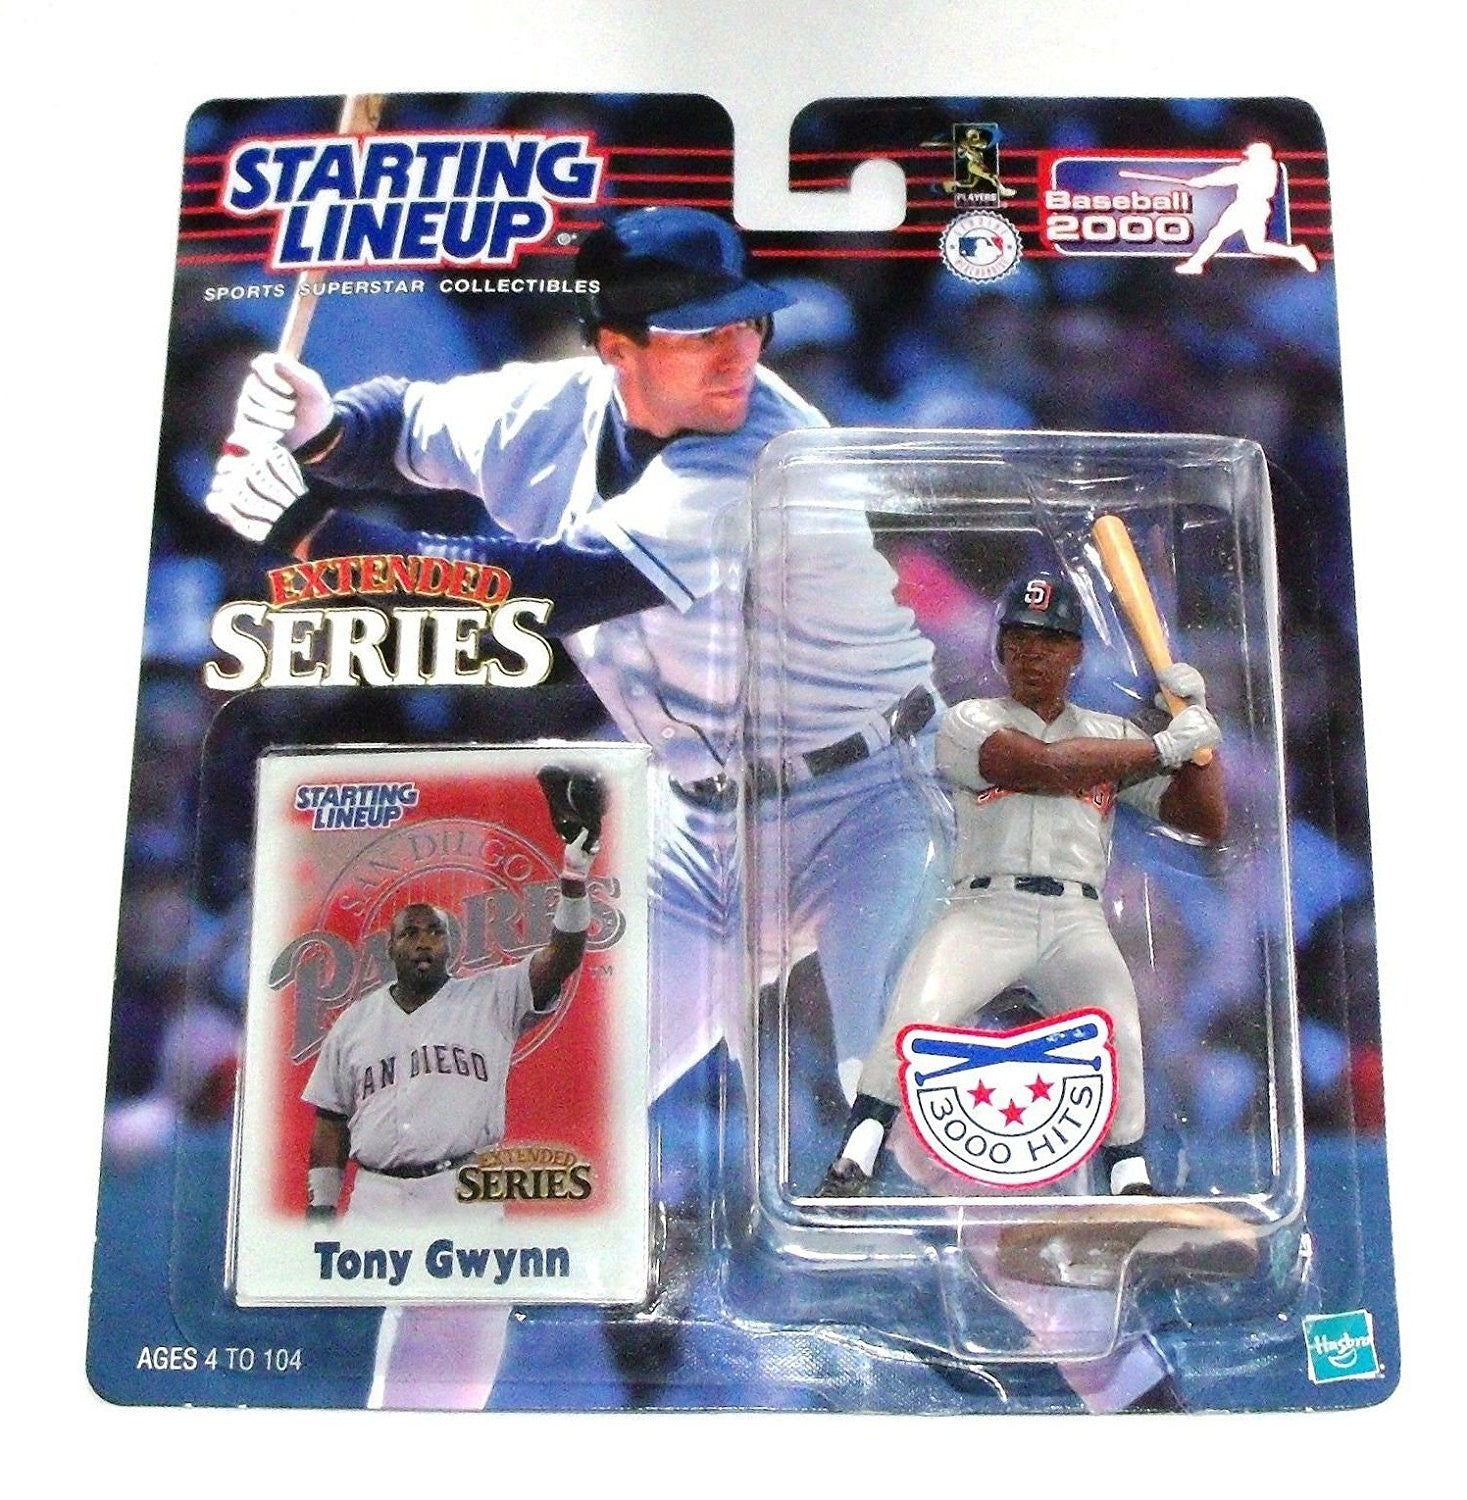 2000 Tony Gwynn San Diego Padres Starting Lineup Extended Series (3000 Hits) MLB Baseball figure